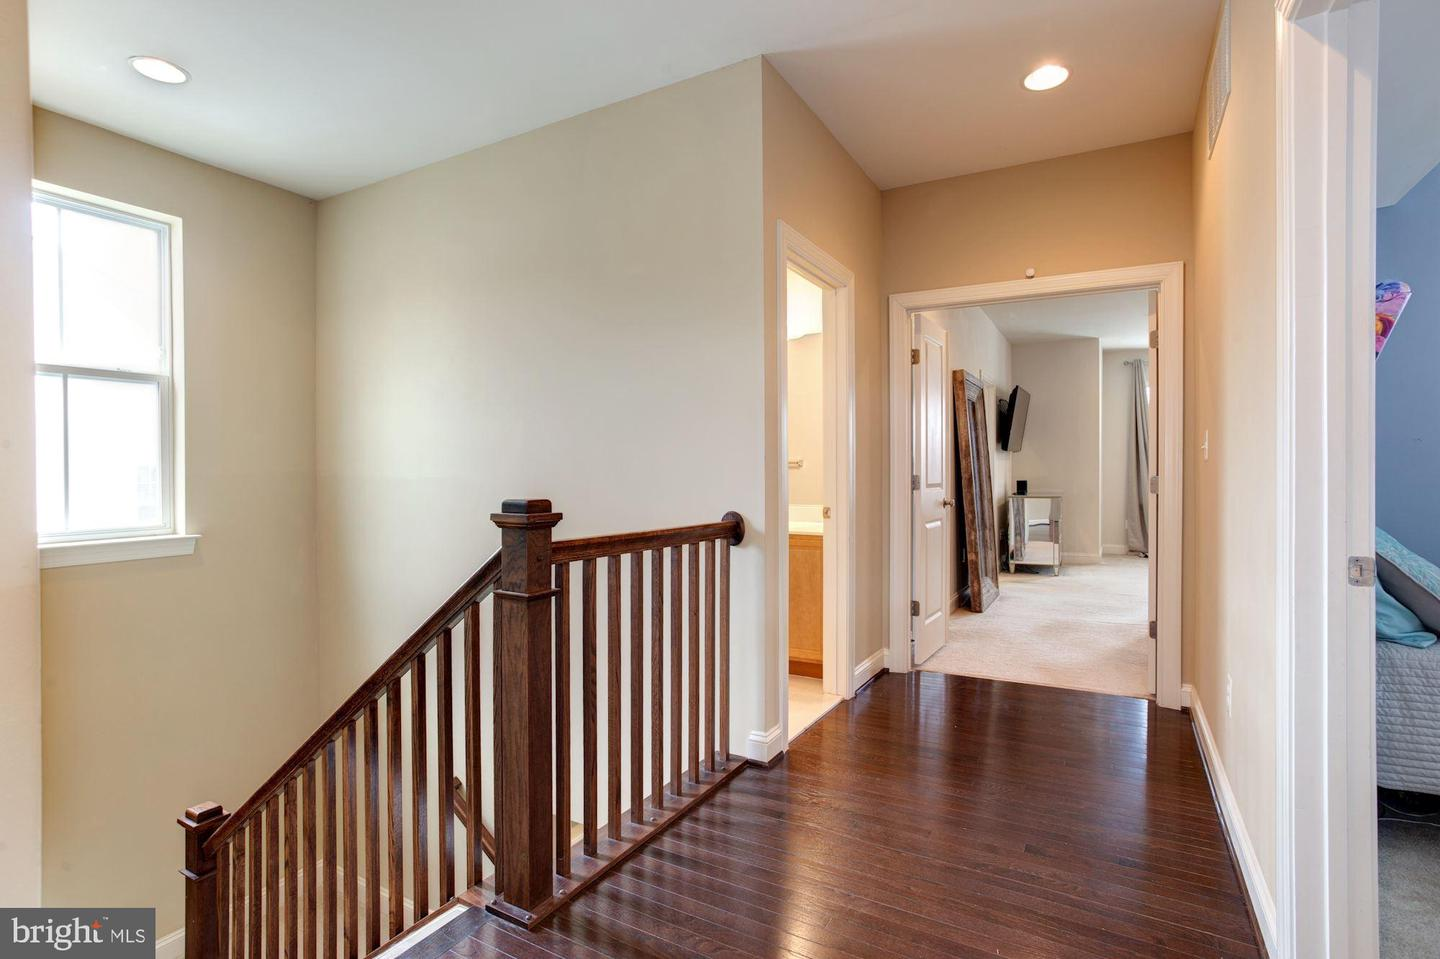 8954 TAWES ST, Fulton, Maryland 20759, 5 Bedrooms Bedrooms, ,5 BathroomsBathrooms,Single Family,For Sale,8954 TAWES ST,MDHW291804